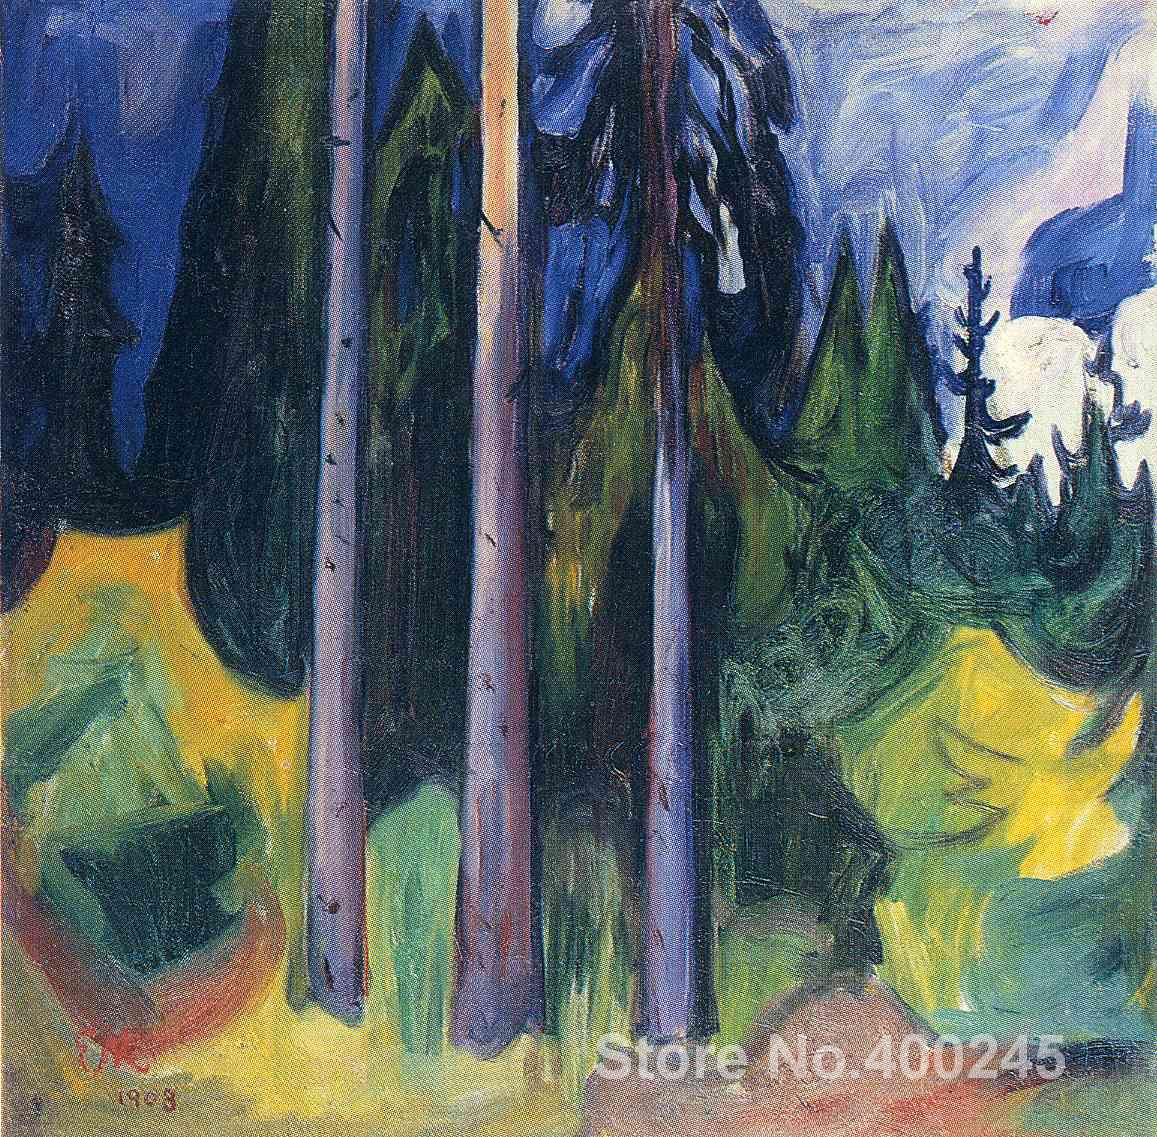 Forest Paintings by Edvard Munch modern art High quality Hand paintedForest Paintings by Edvard Munch modern art High quality Hand painted